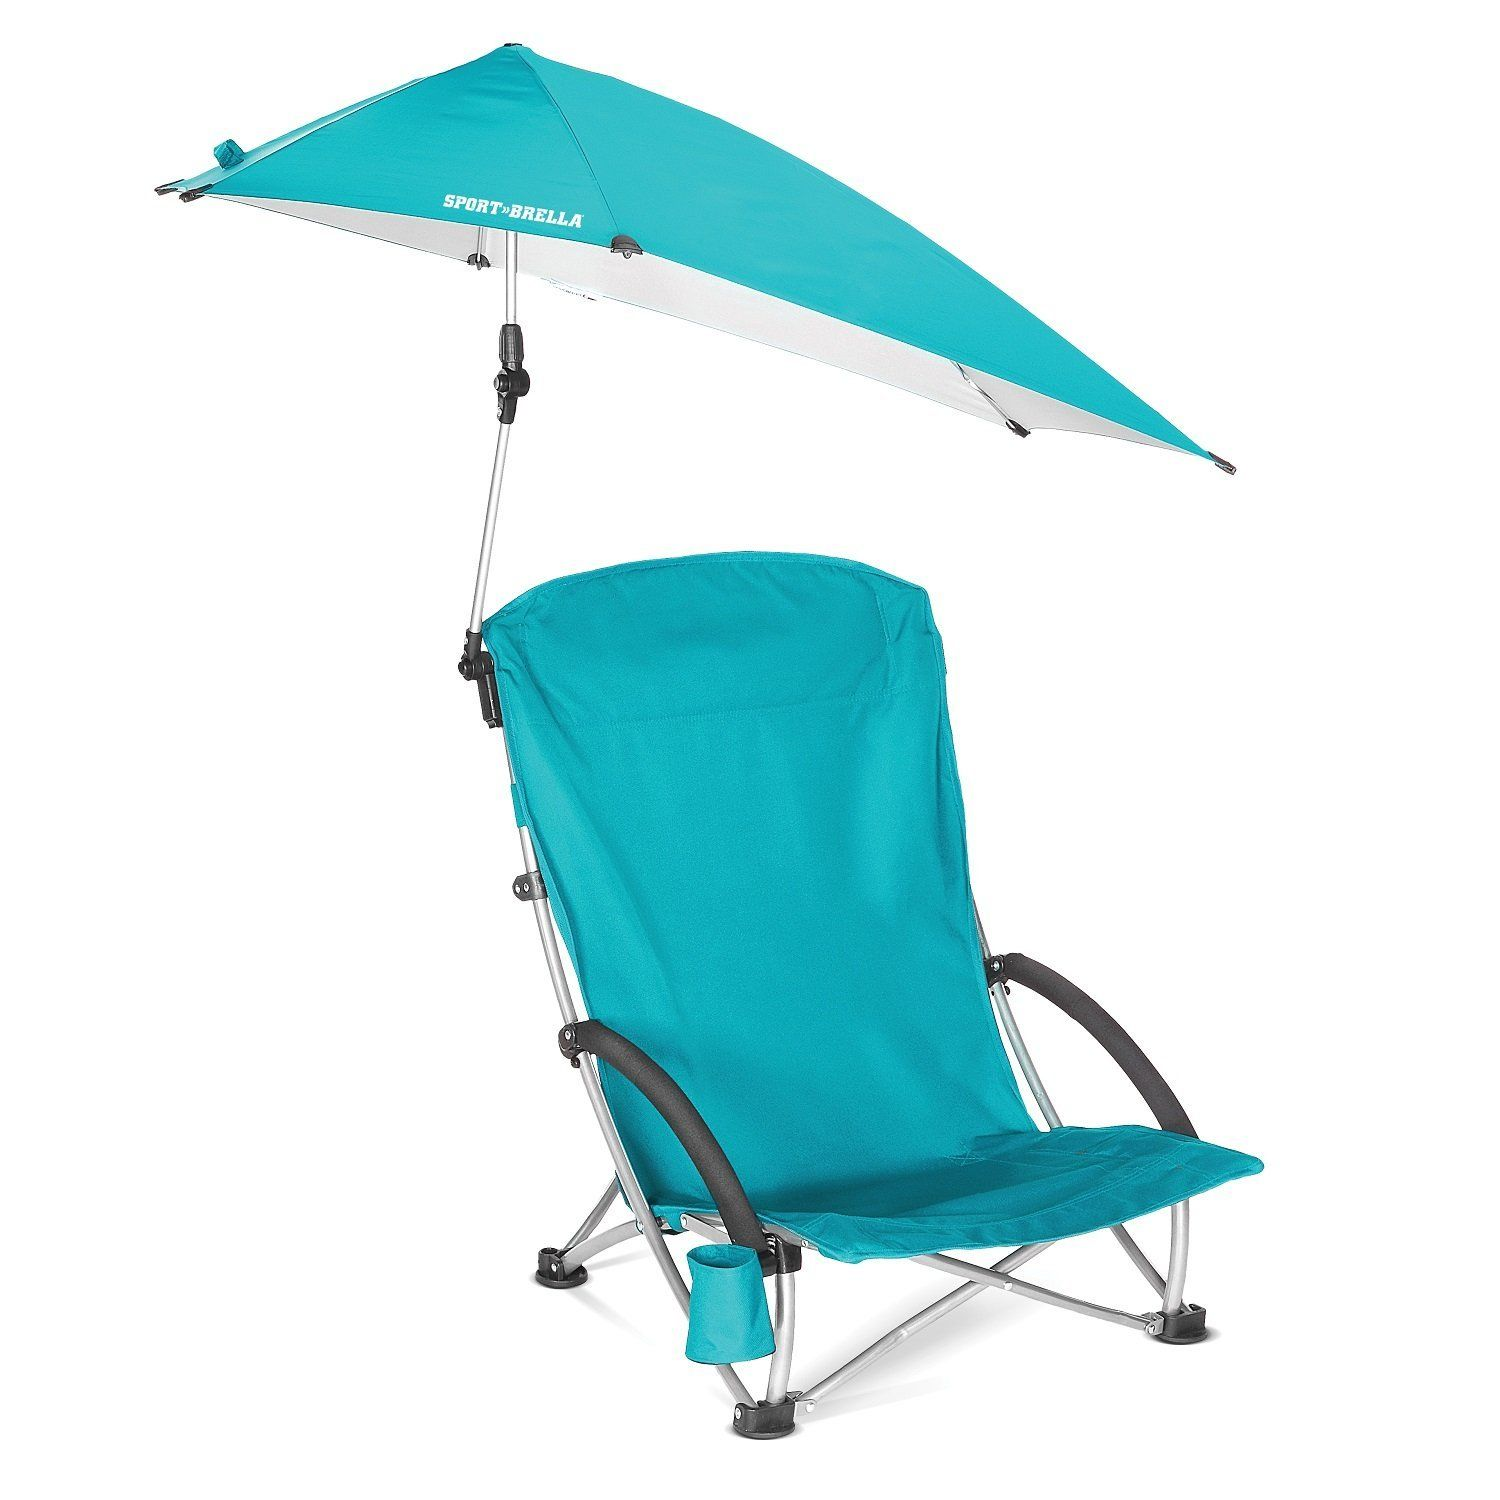 Sensational Beach Chairs Bed Bath And Beyond Beauty Within Clinic Gamerscity Chair Design For Home Gamerscityorg